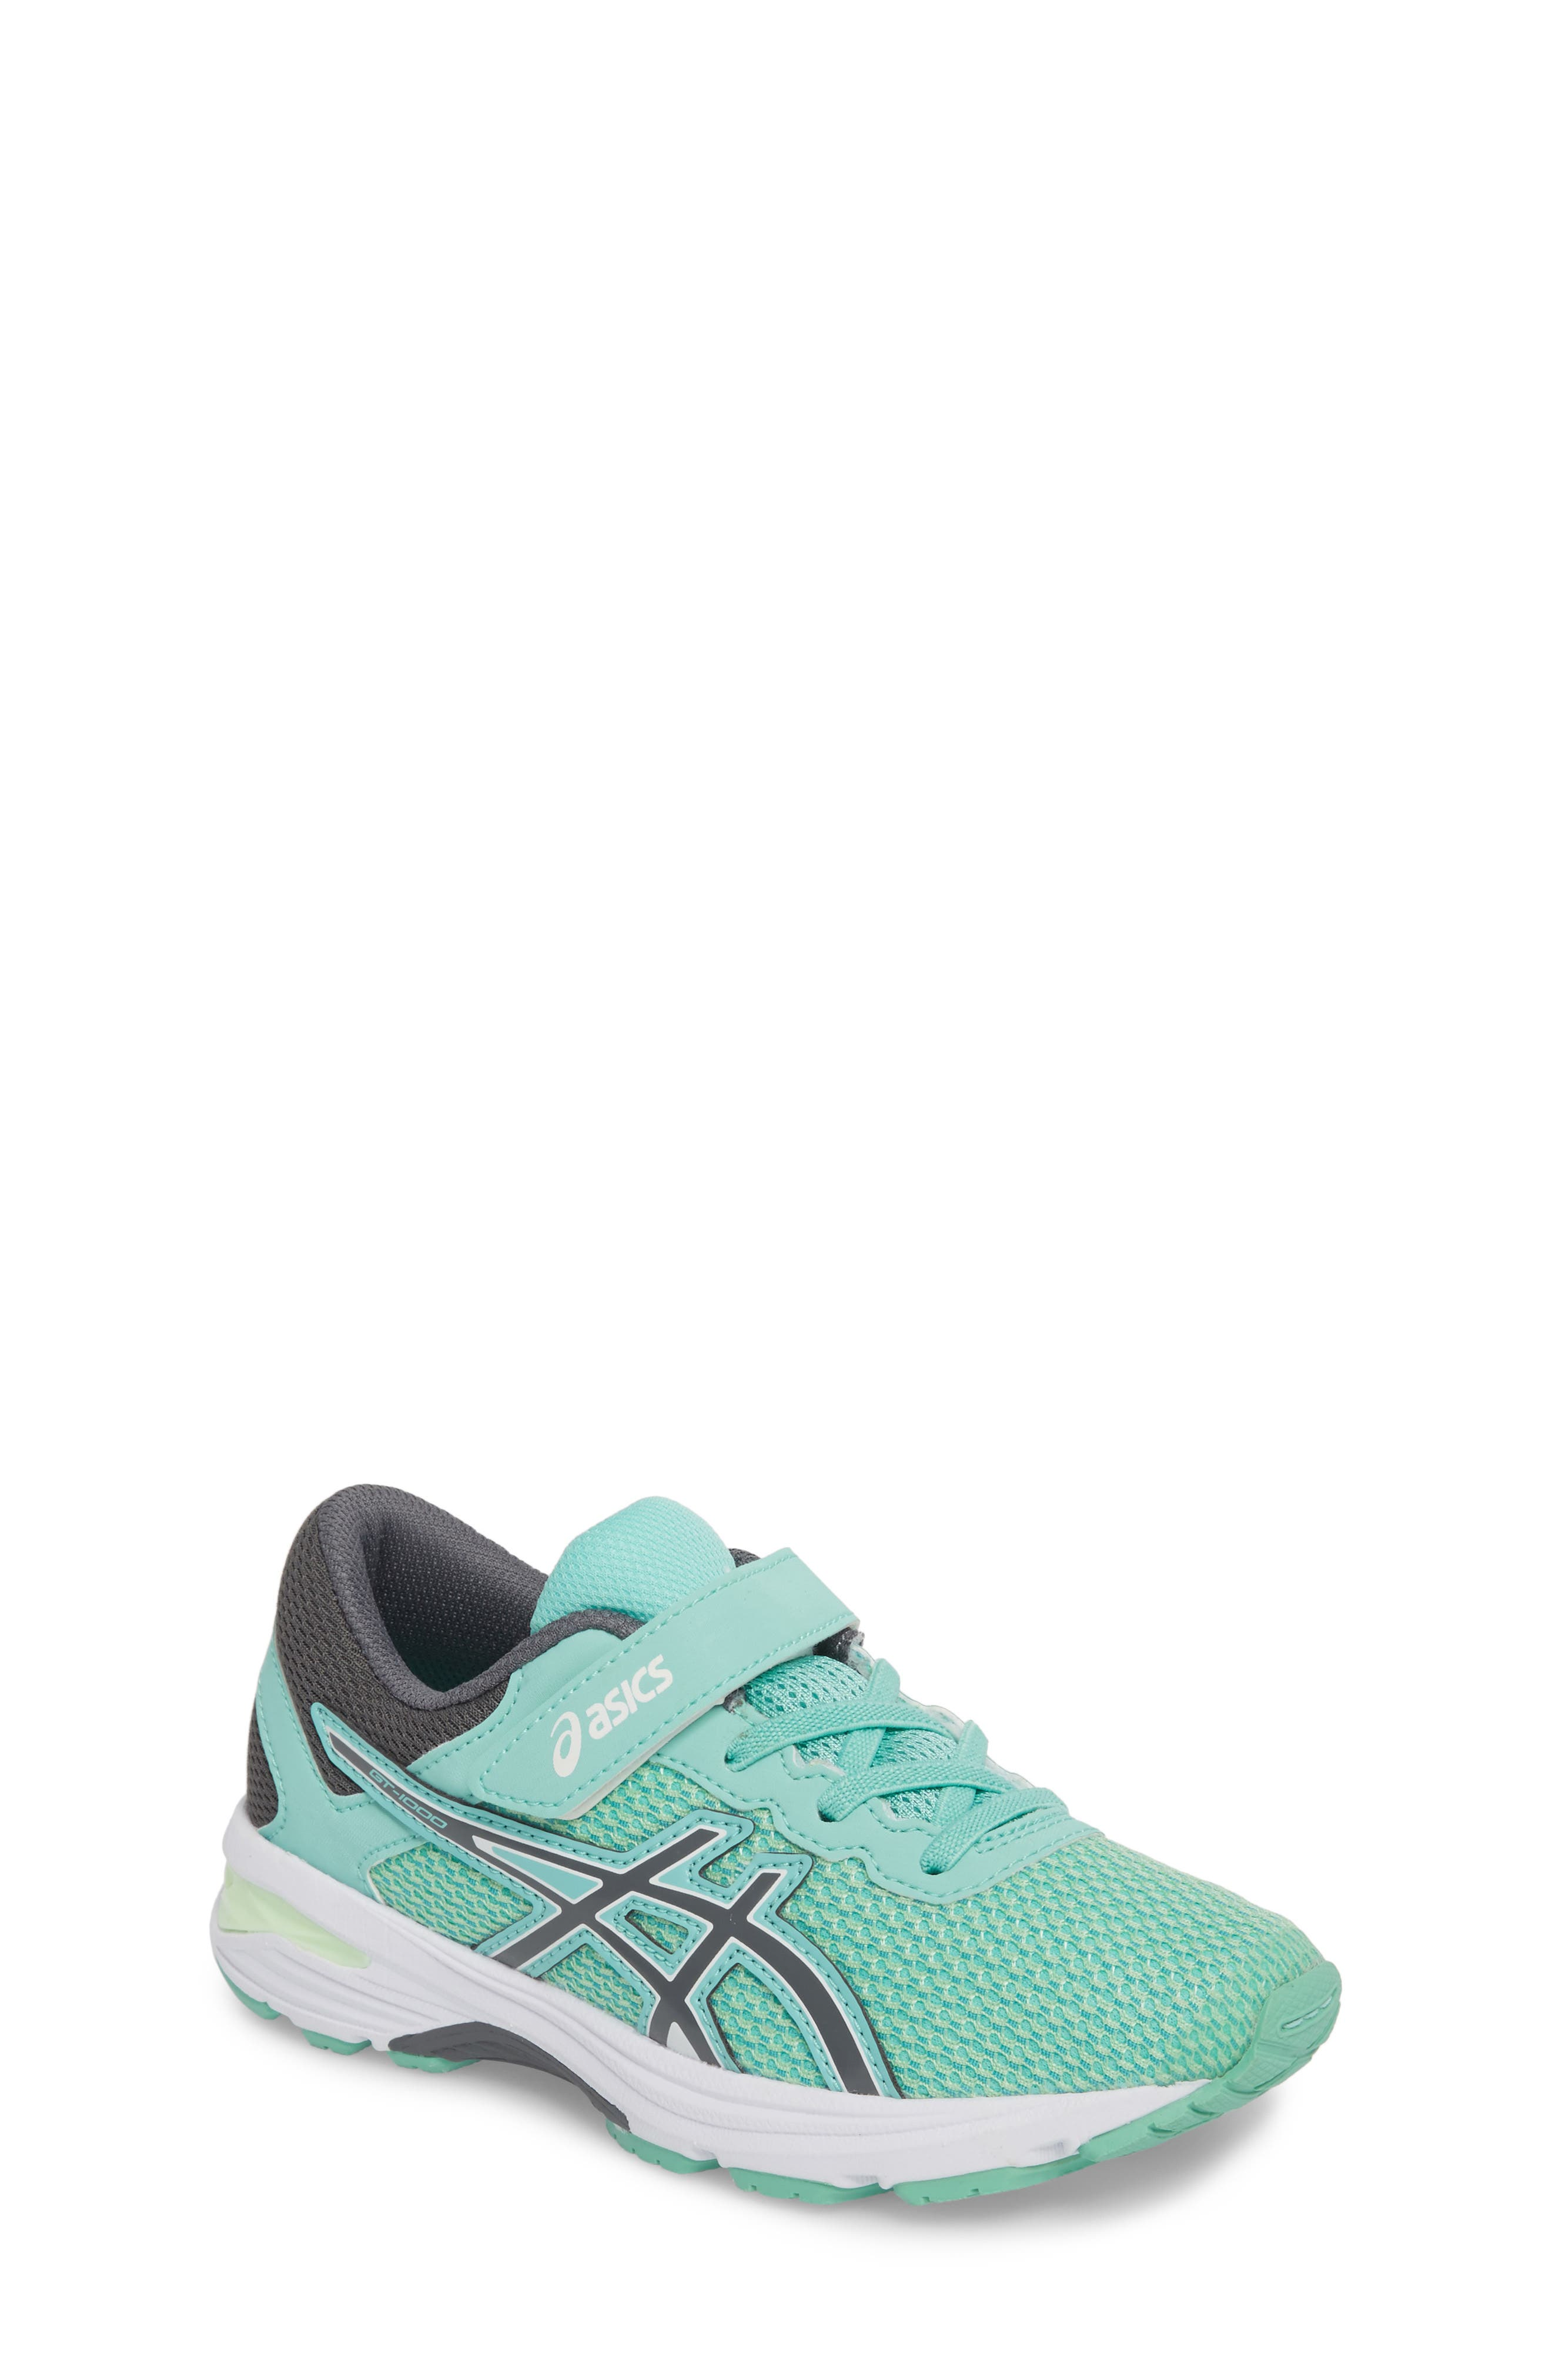 Asics GT-1000<sup>™</sup> 6 PS Sneaker,                             Main thumbnail 1, color,                             Carbon/ Opal Green